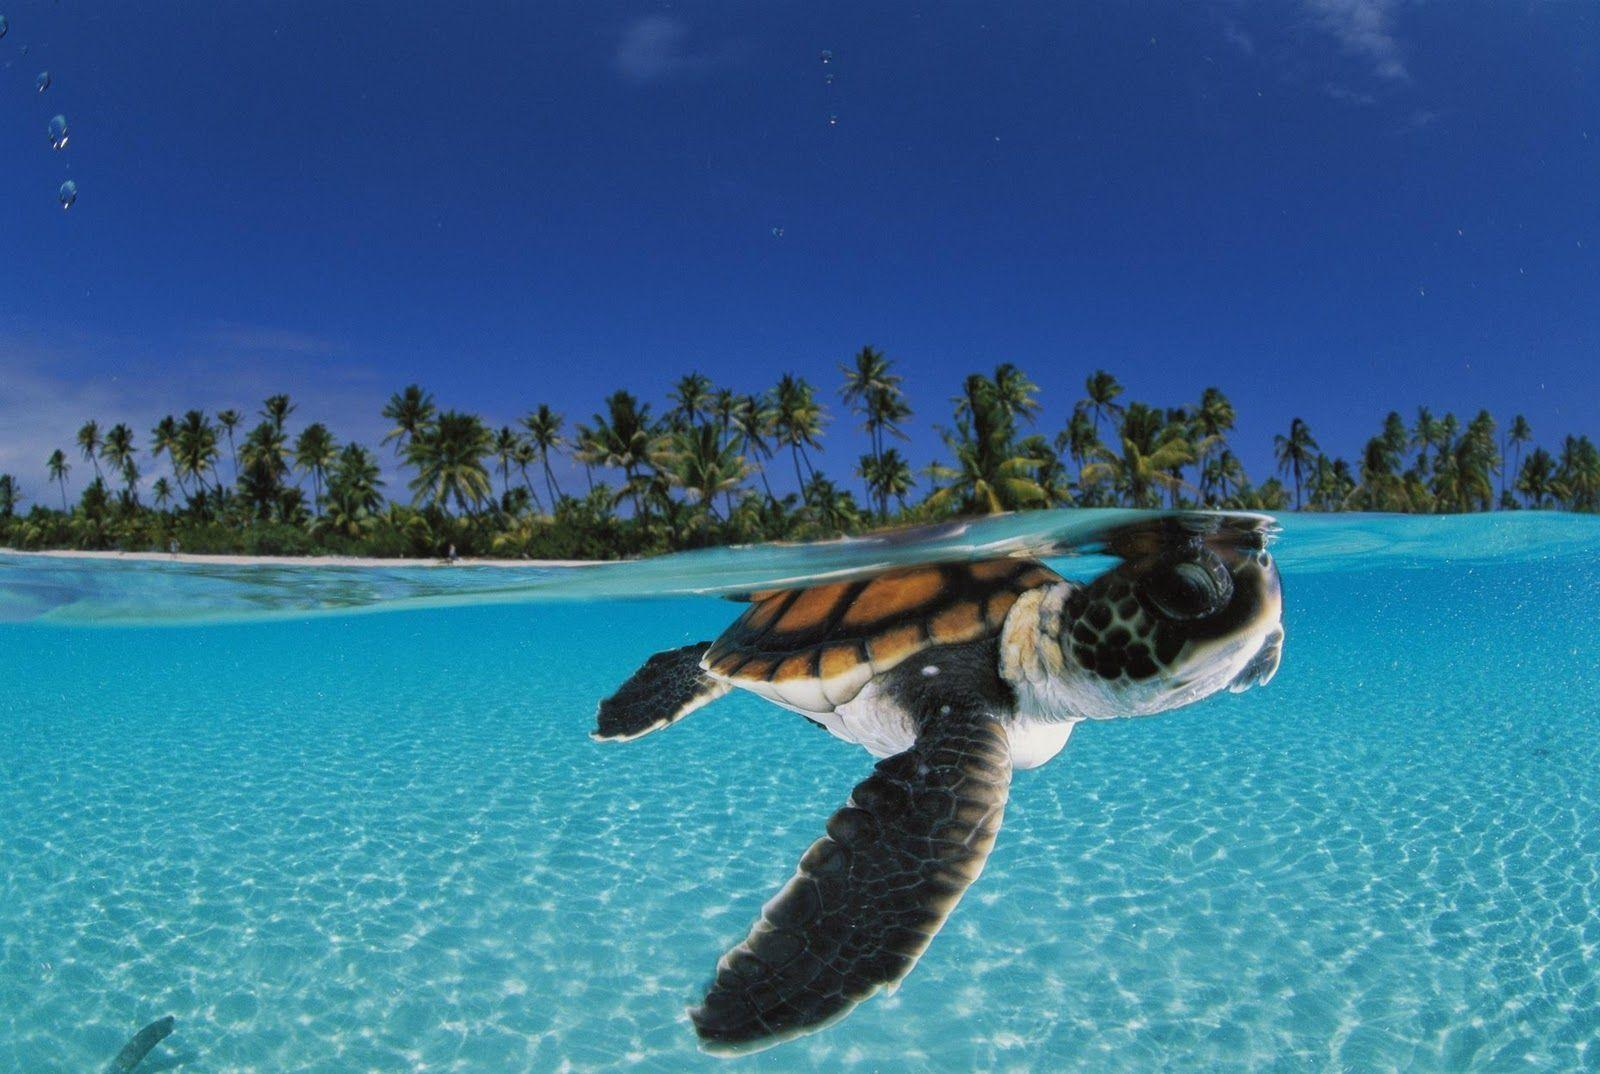 Sea Turtle Wallpapers 11278 1600x1074 px